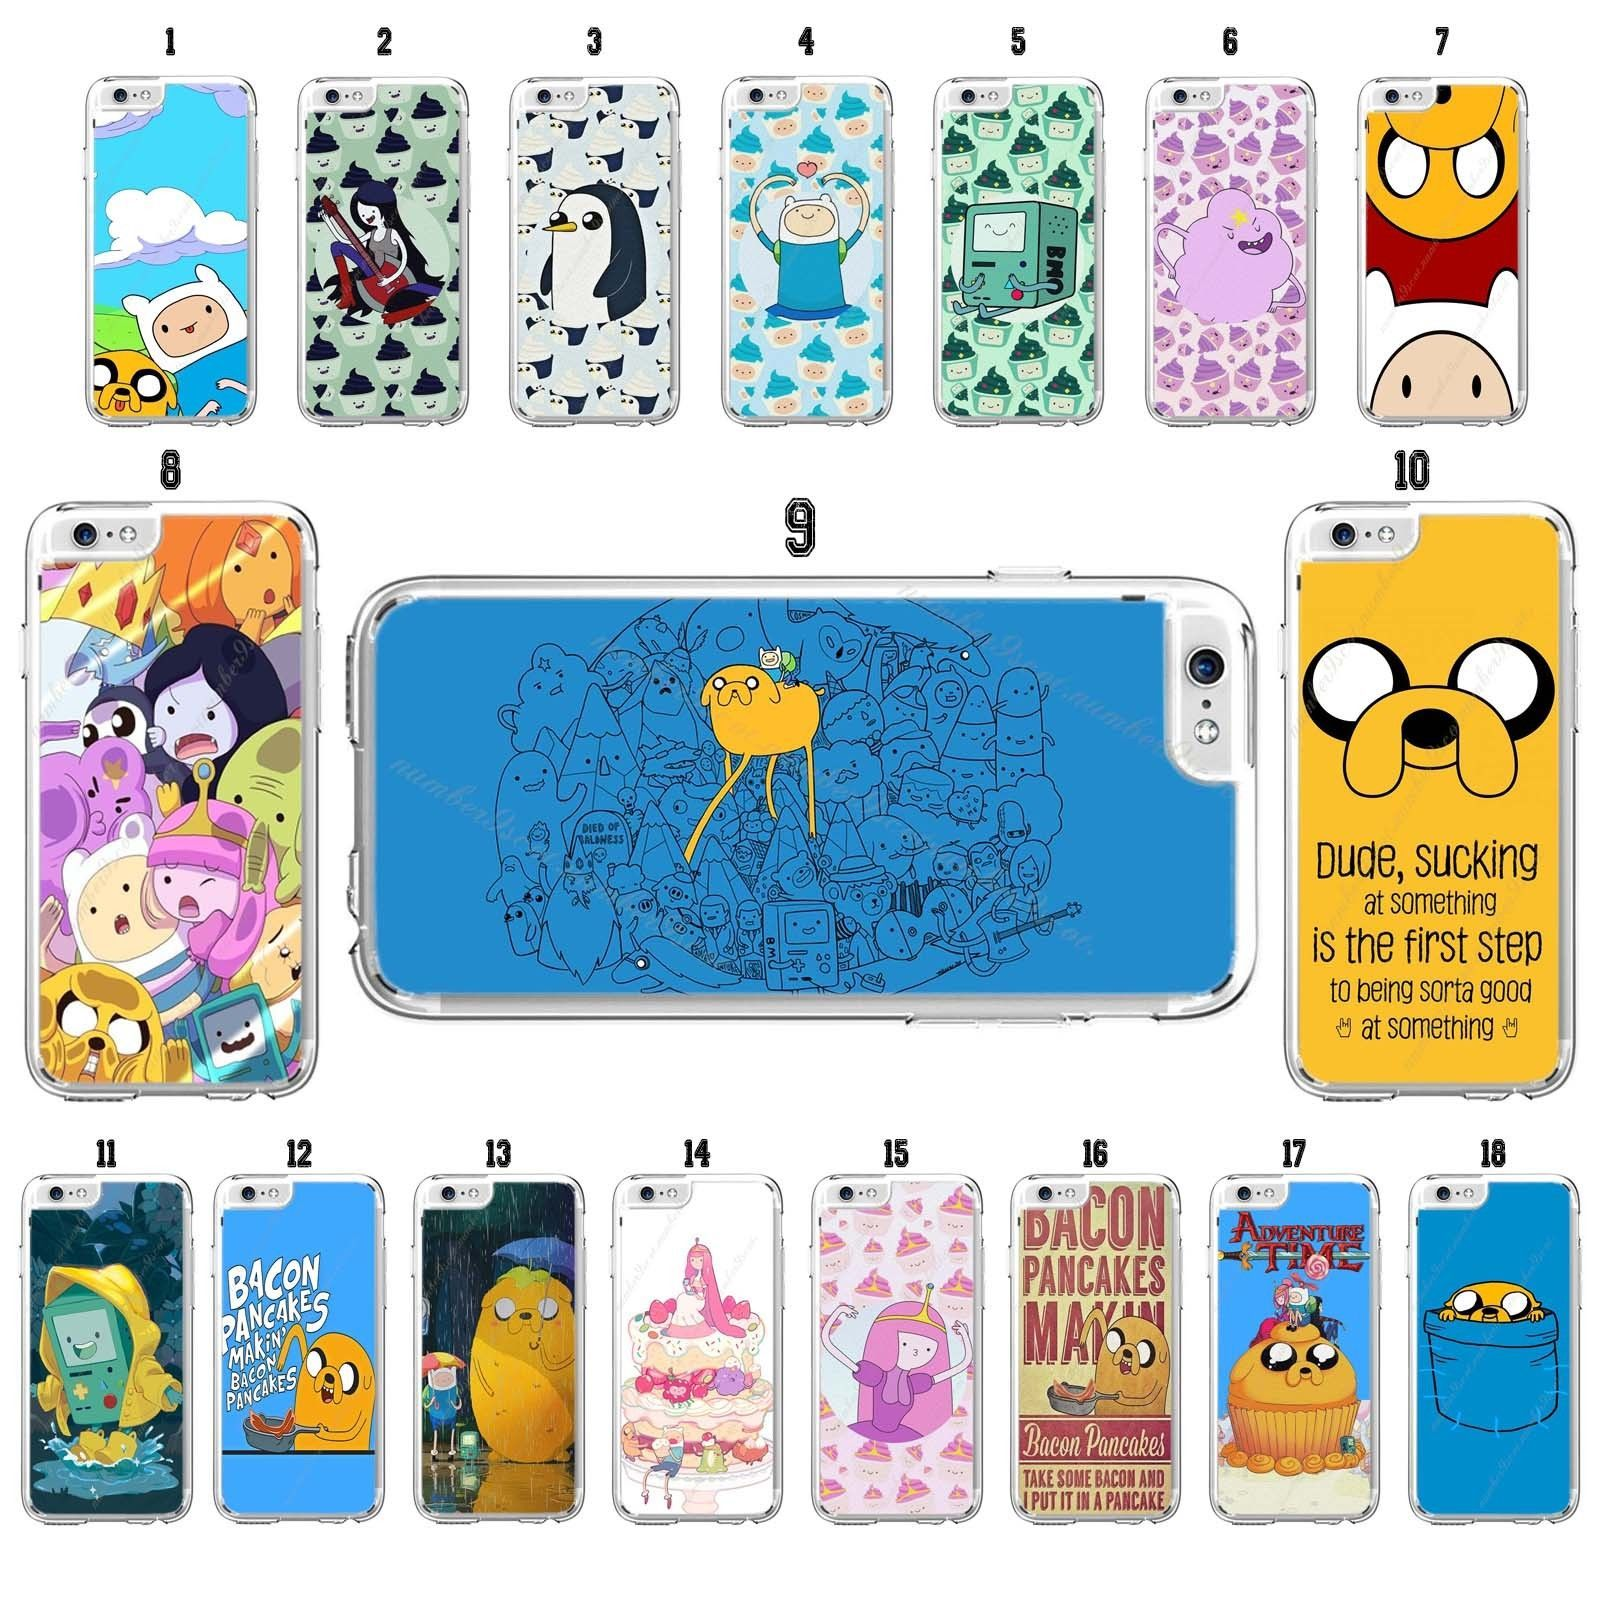 Adventure Time Finn & Jake Case For Iphone 4 4S 5 5C 5S 6 6S 7 Plus